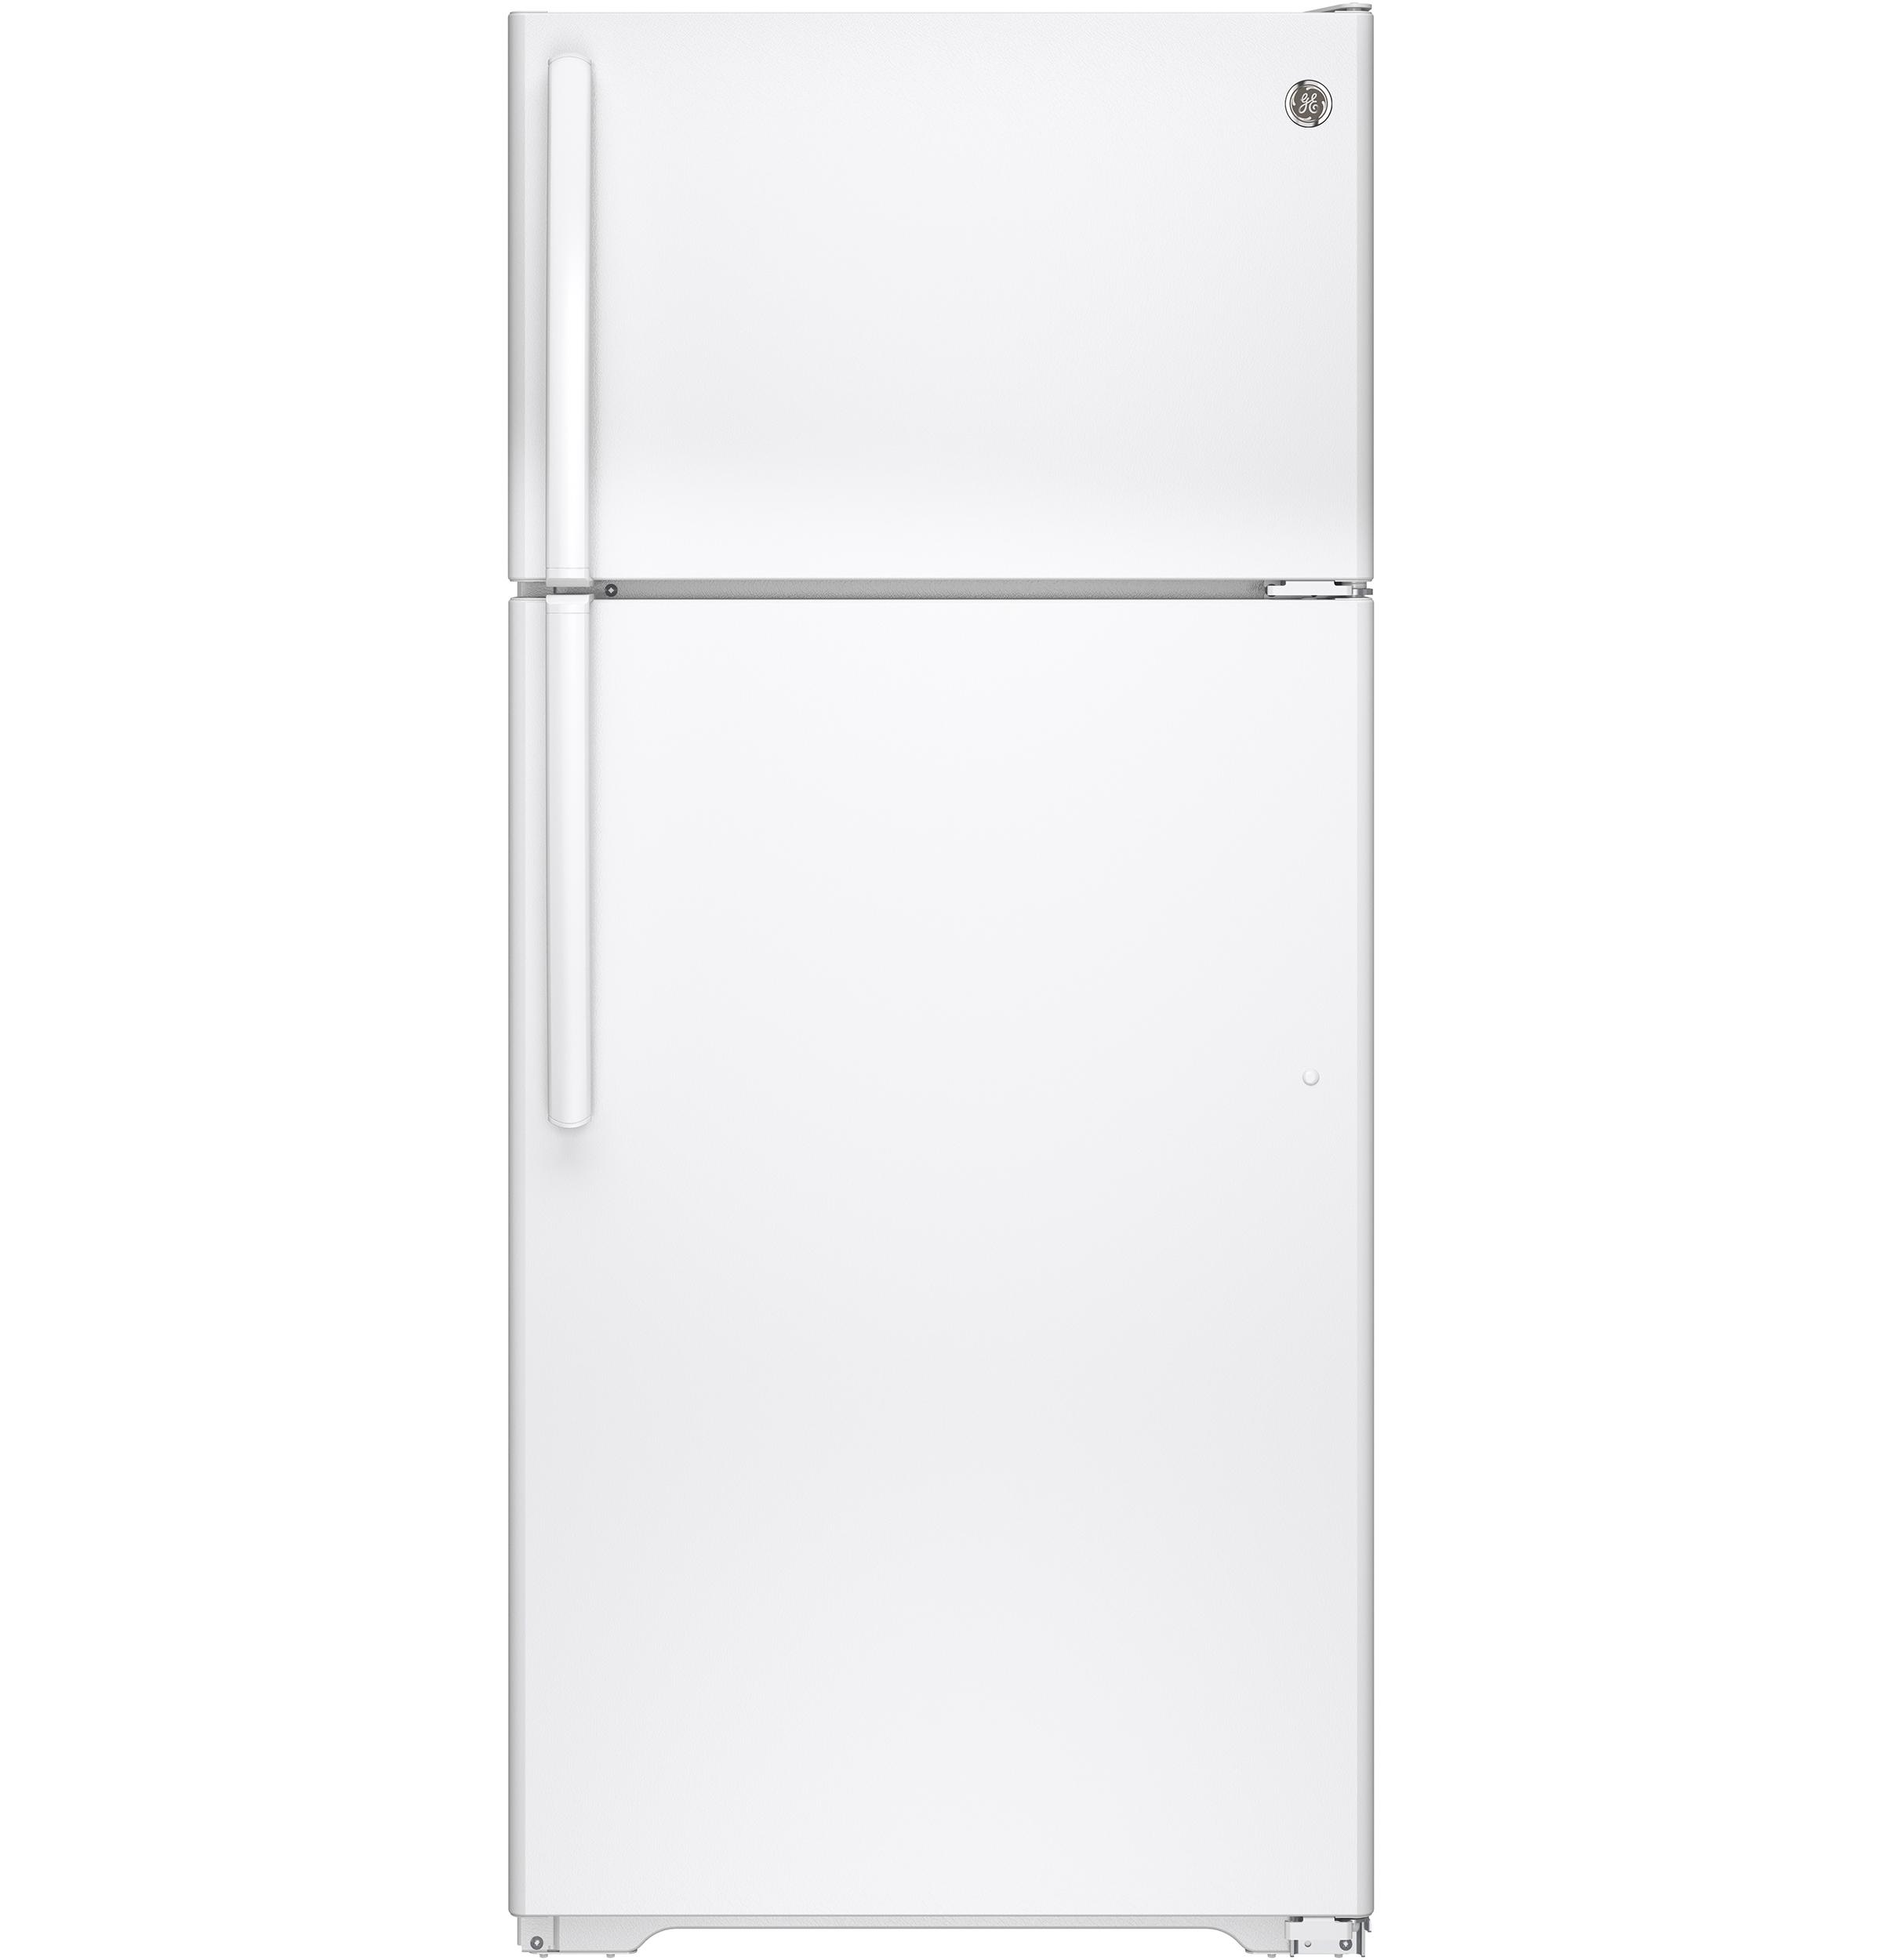 GEEnergy Star® 15.5 Cu. Ft. Top-Freezer Refrigerator